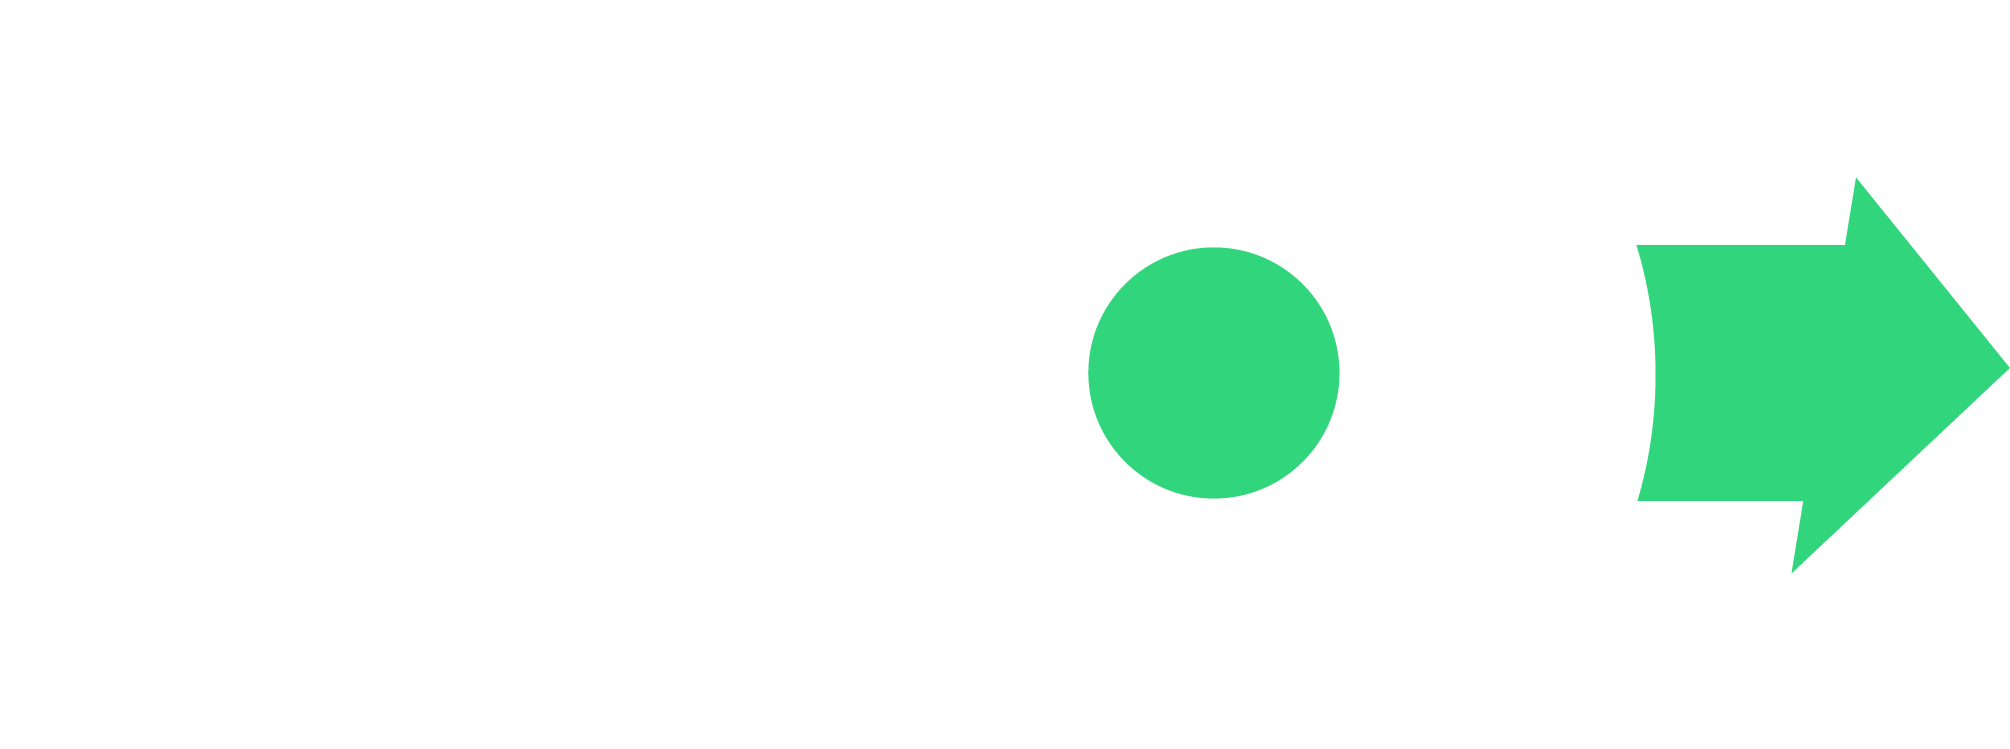 GO-white-and-green